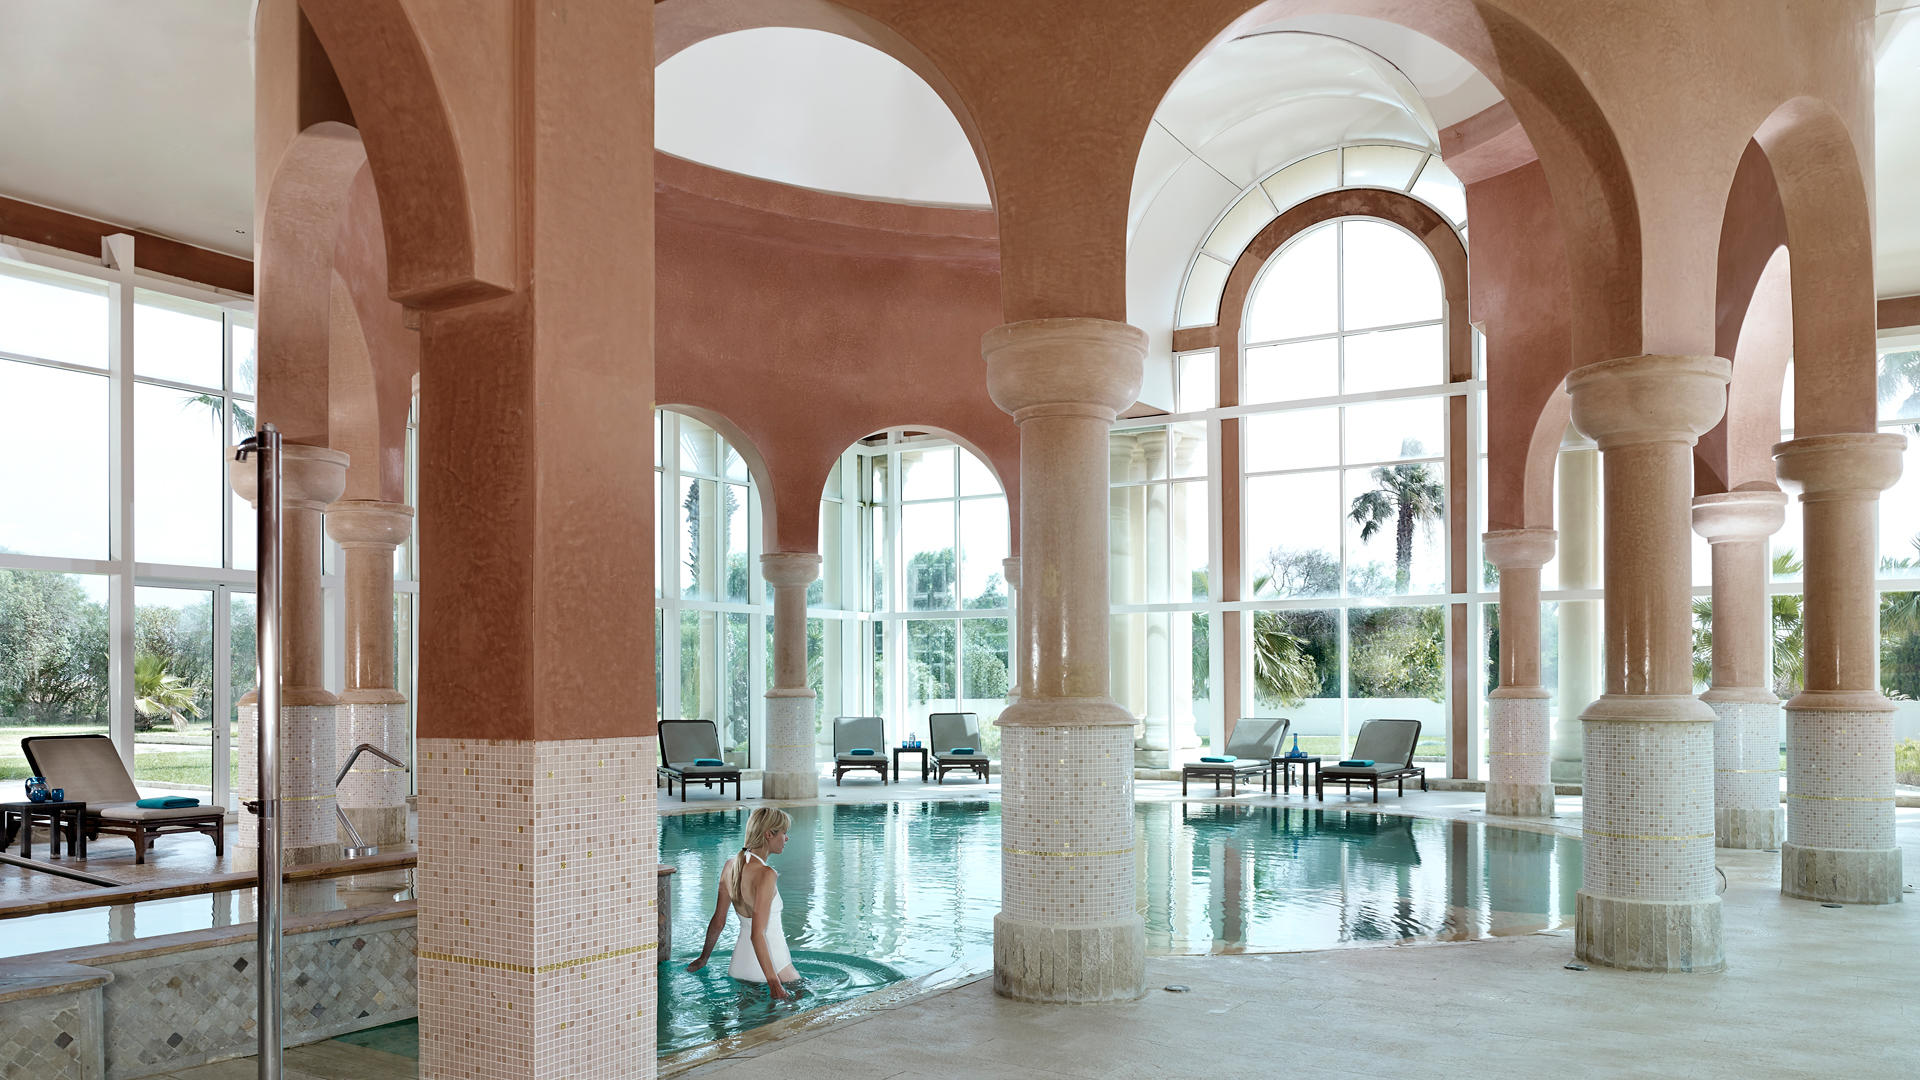 Cenizaro_ResidencesTunis_Thalasso-Therapie-Pool